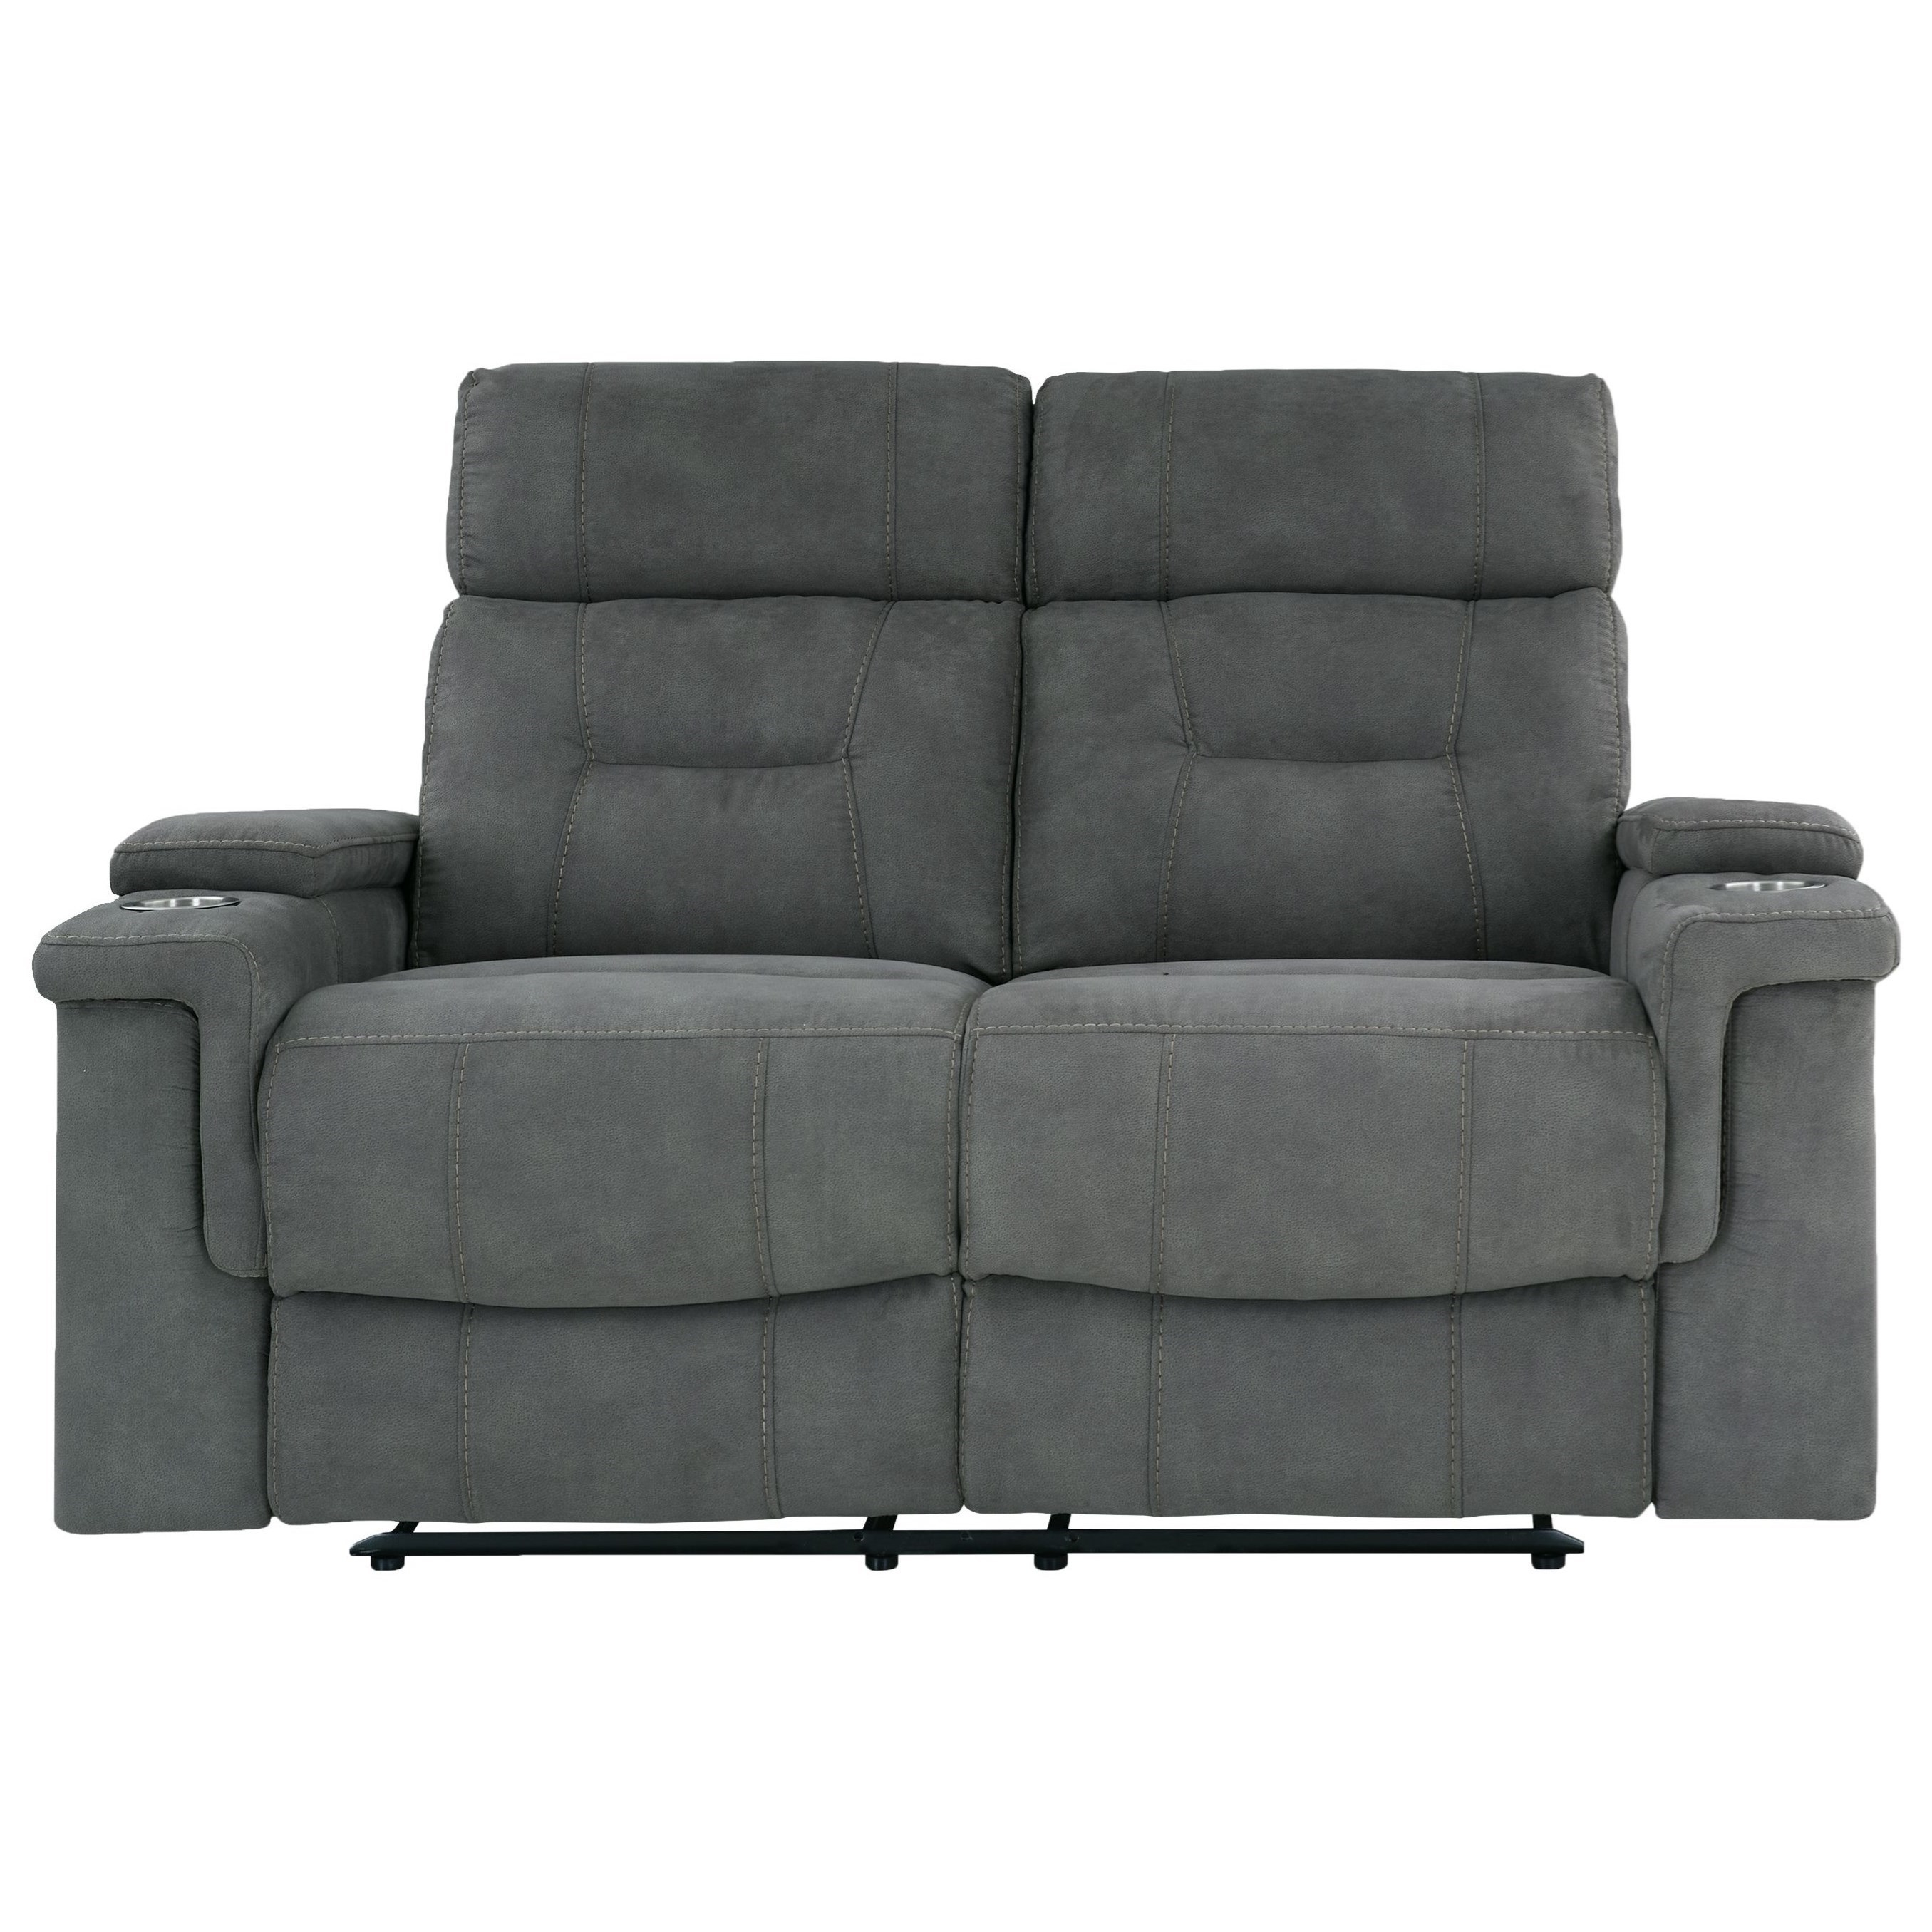 Diesel Manual Reclining Loveseat by Parker Living at Simply Home by Lindy's